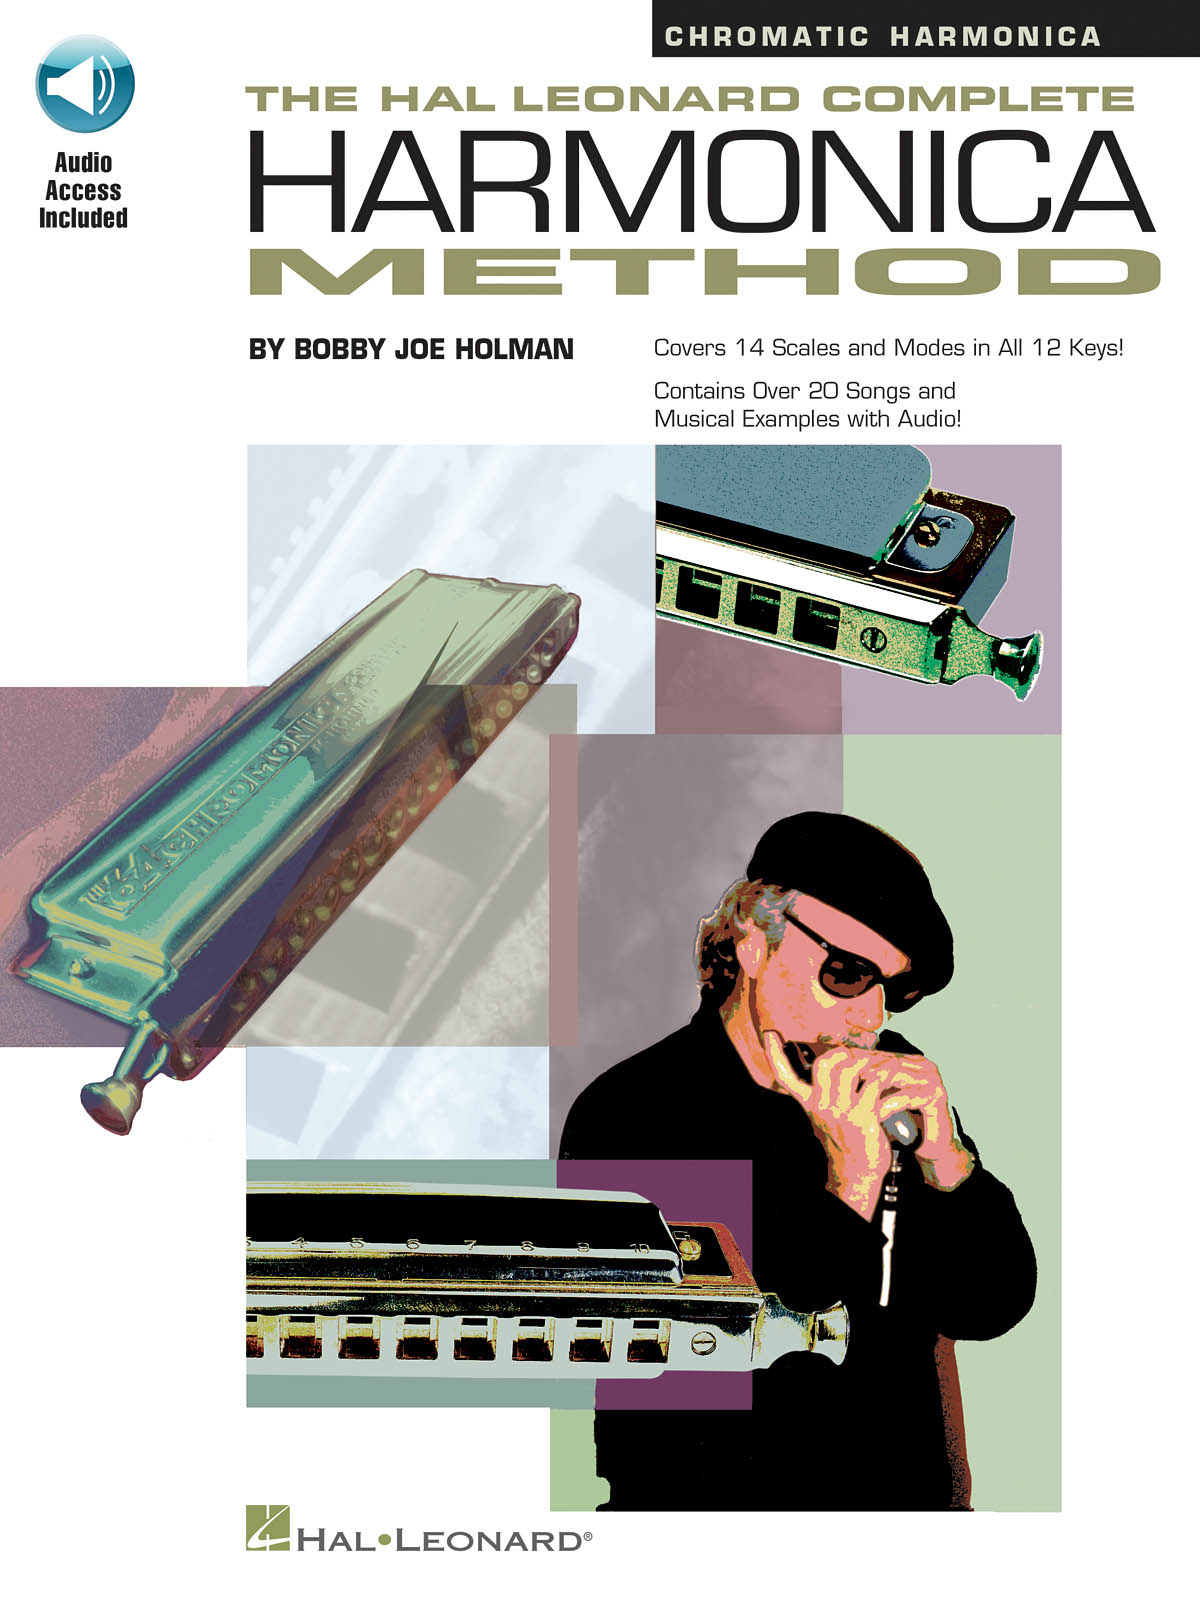 Bobby Joe Holman: Complete Harmonica Method - Chromatic: Harmonica: Instrumental